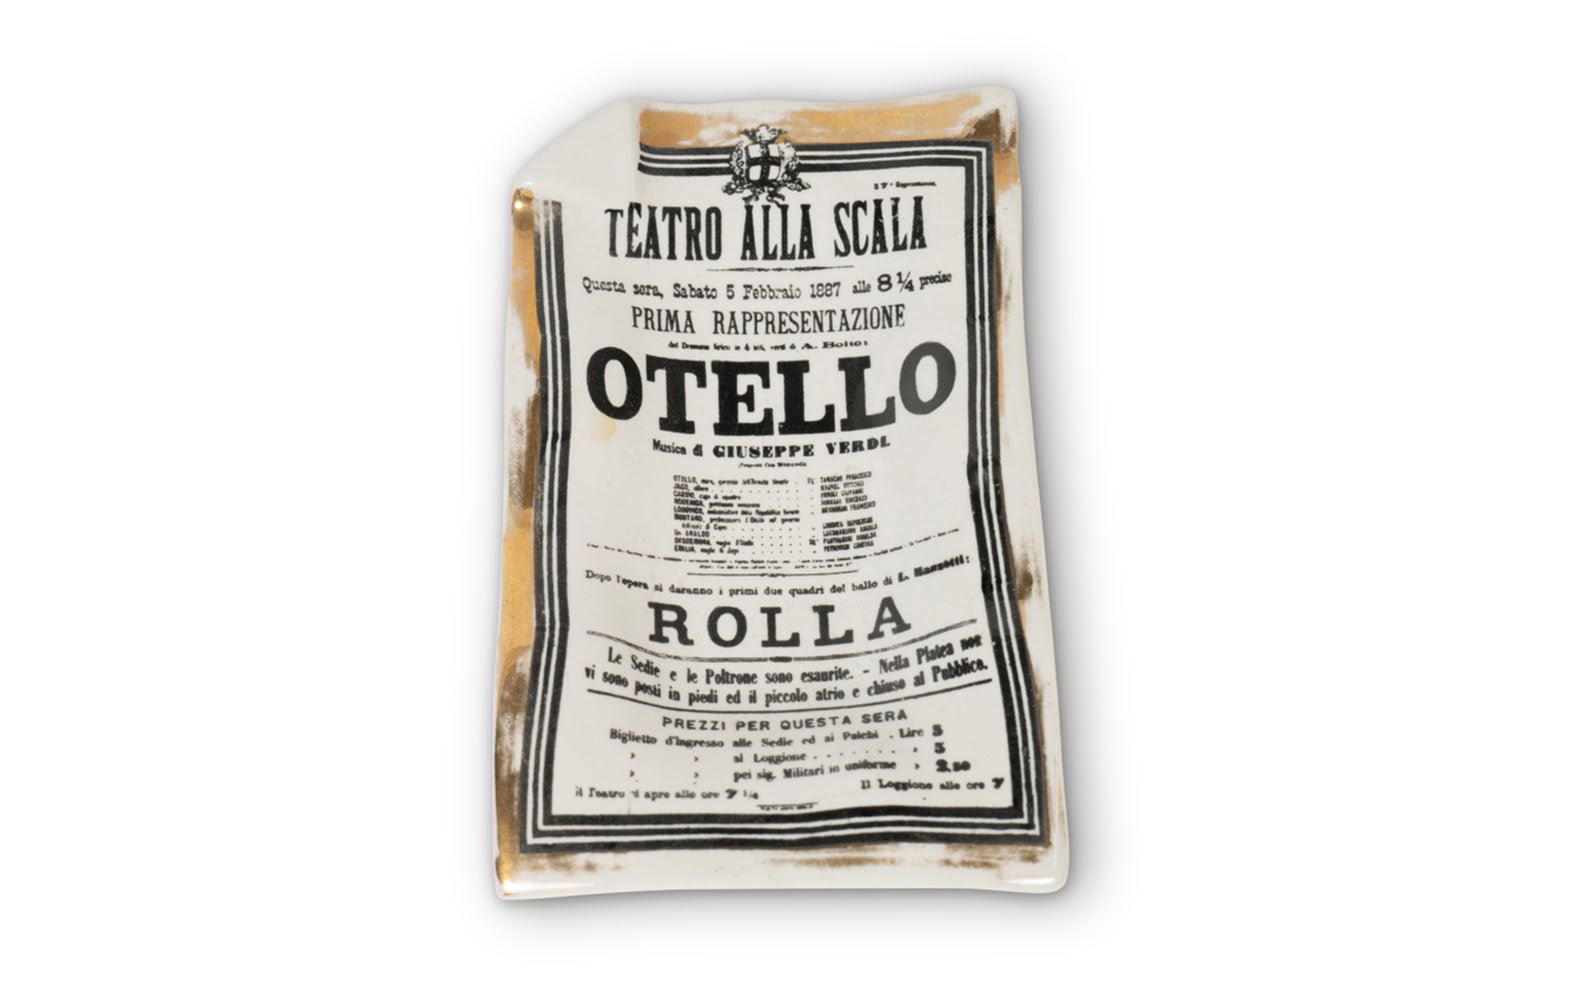 Decorative Tray Styled After the Poster for Giuseppe Verdi's Opera Otello